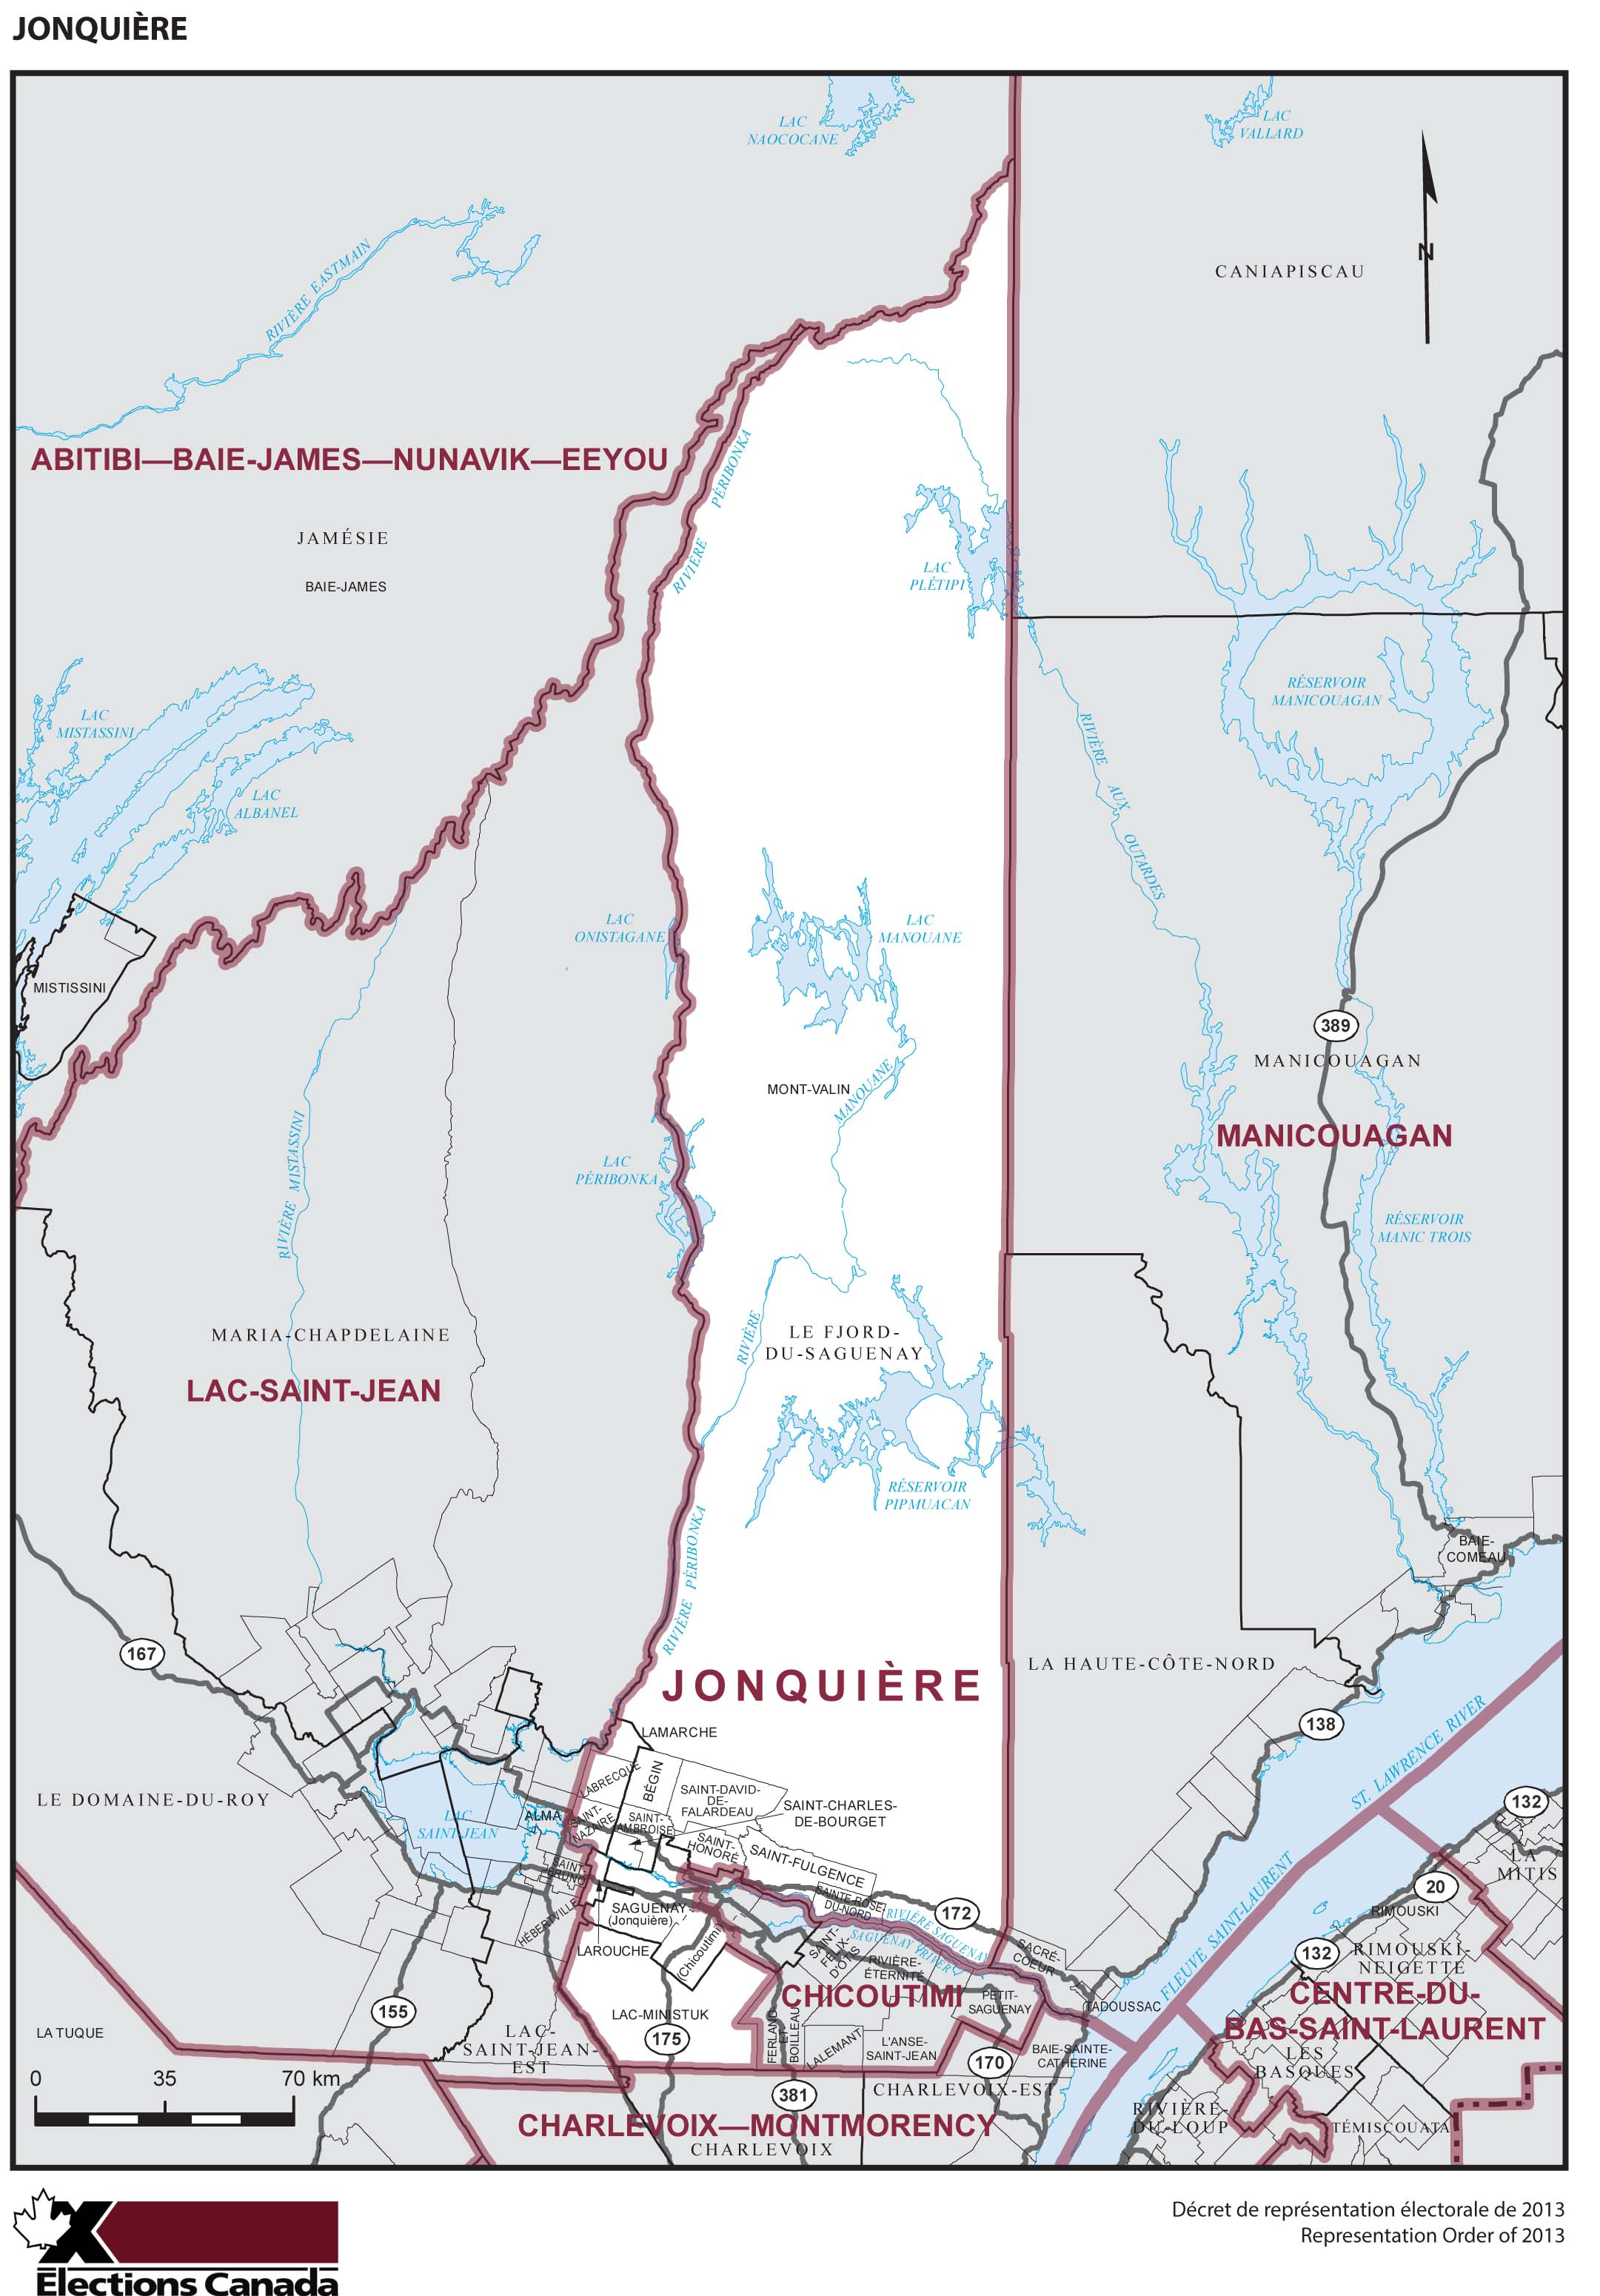 Map: Jonquière, Federal electoral district, 2013 Representation Order (in white), Quebec